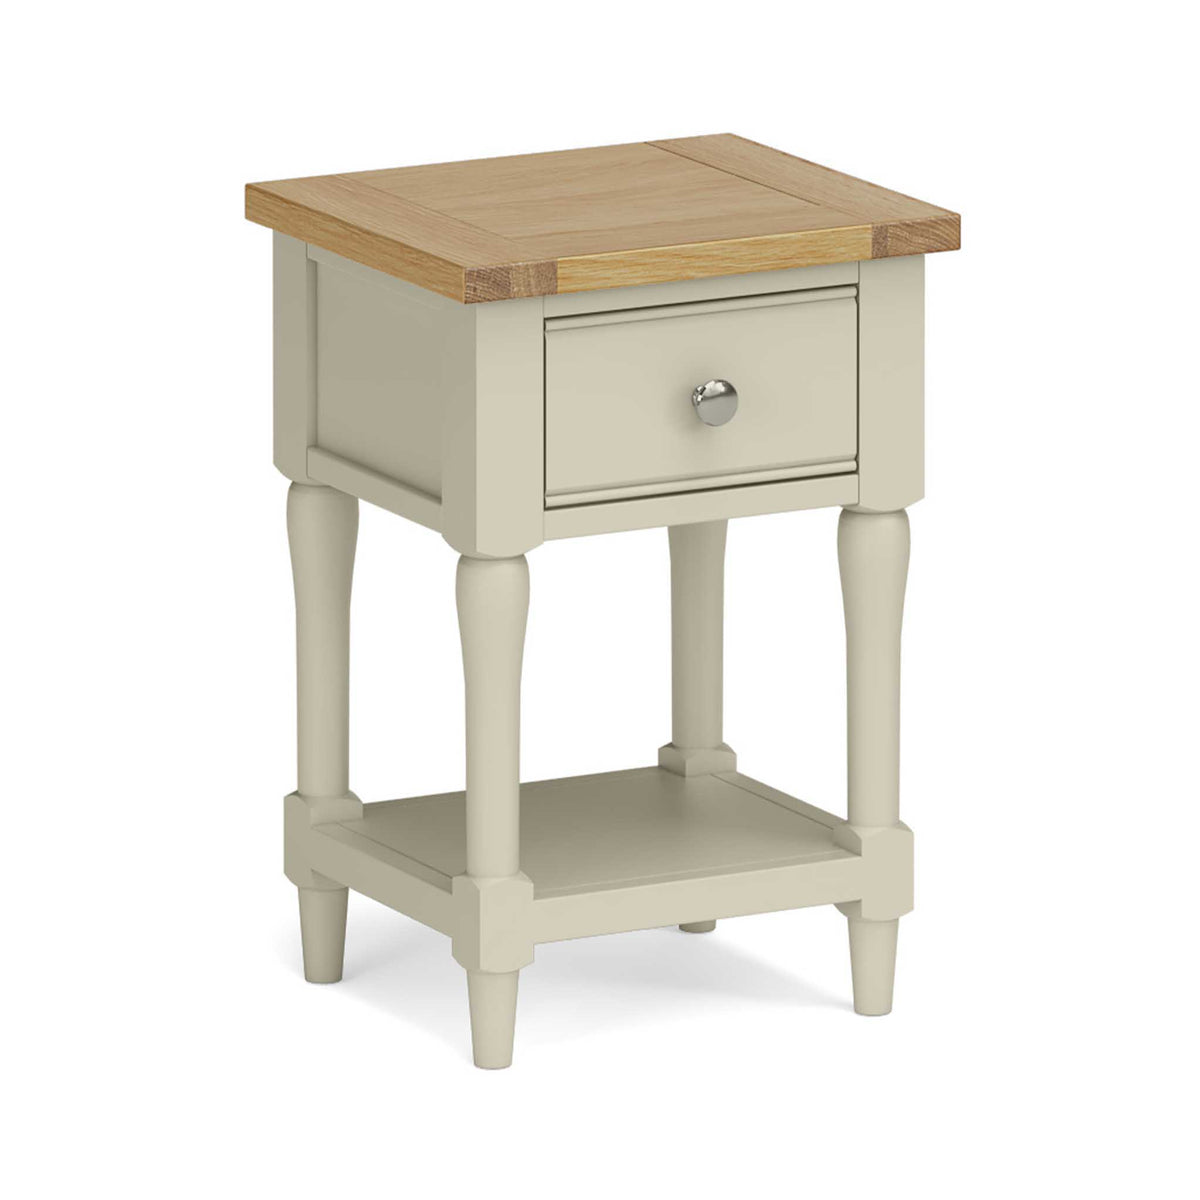 Chichester Lamp/Side Table in Ledum Green by Roseland Furniture